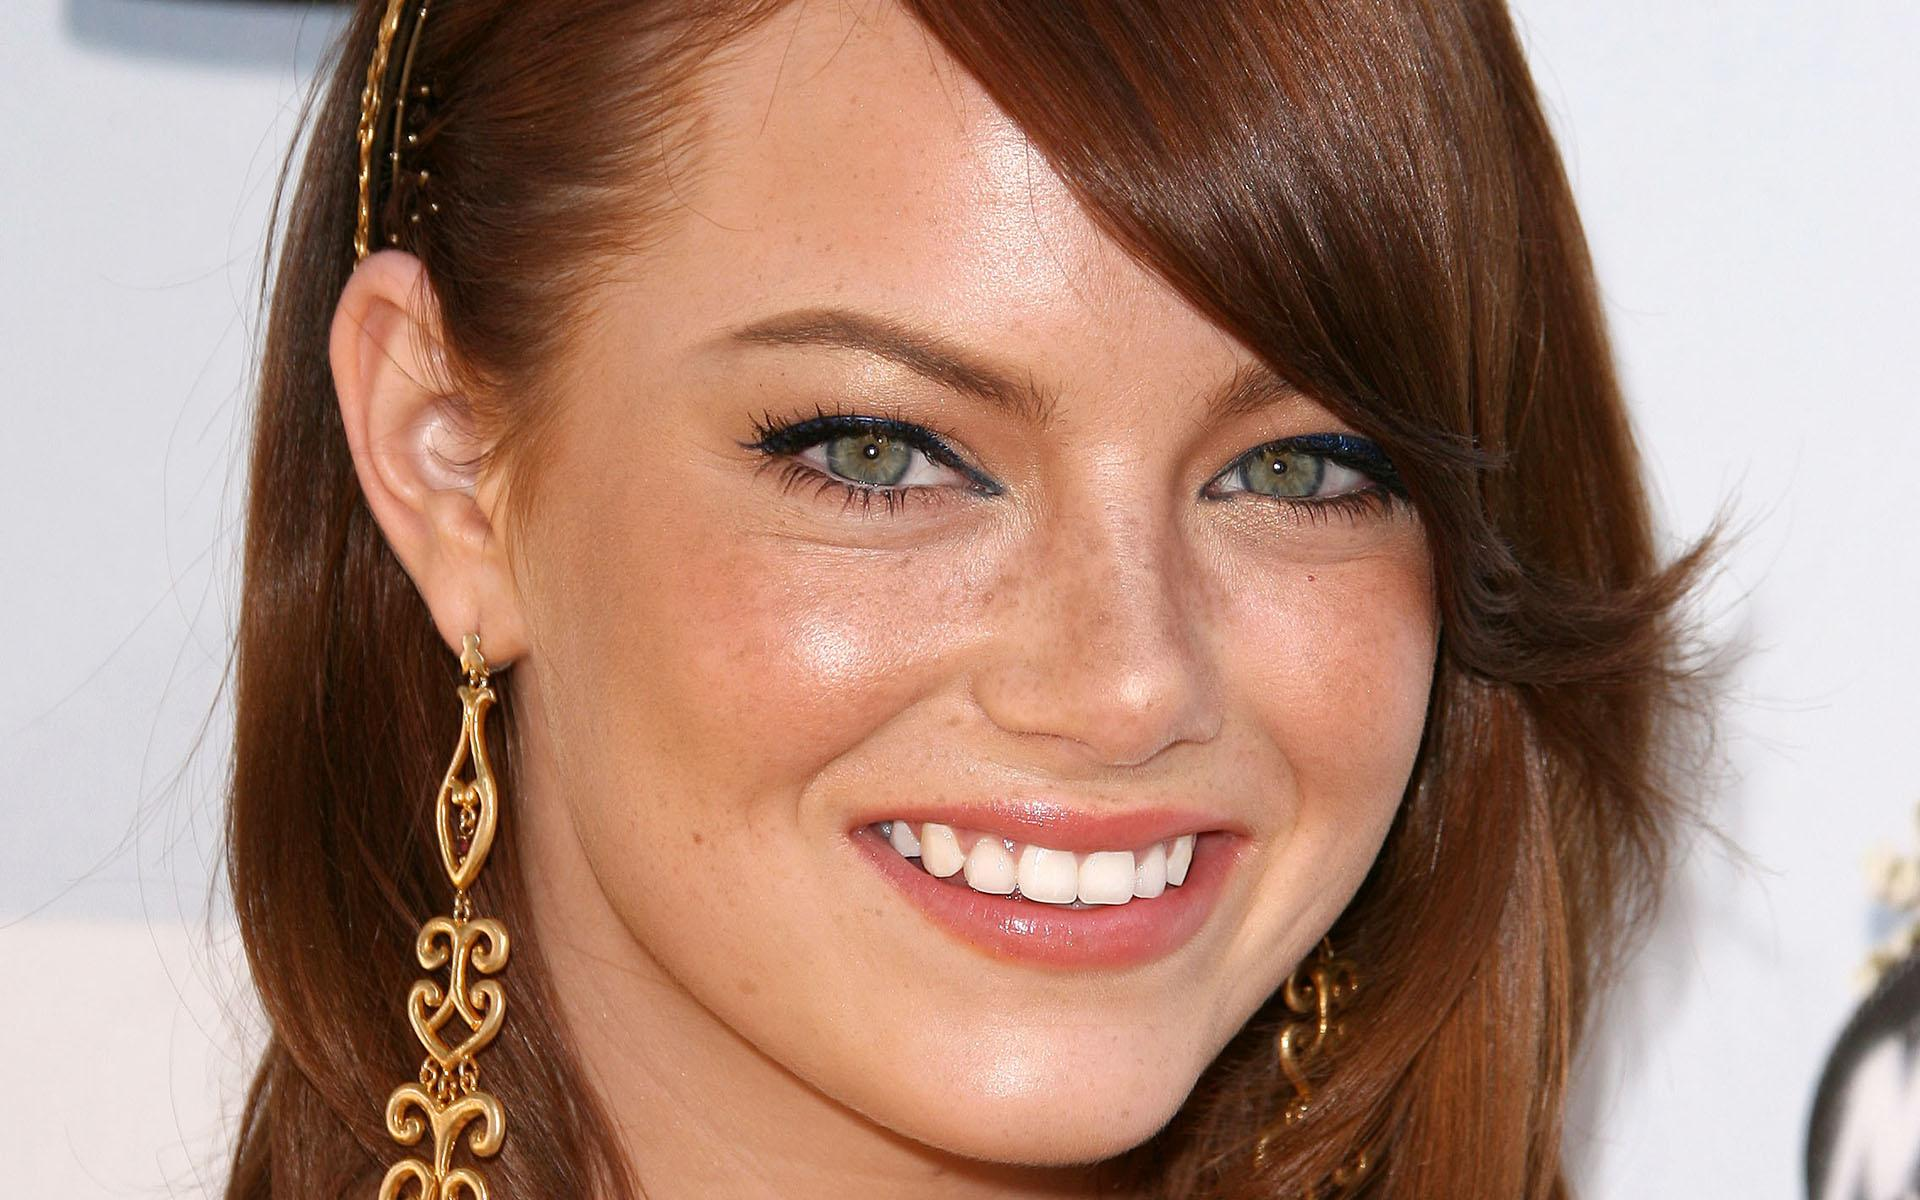 emma stone wallpaper hd download